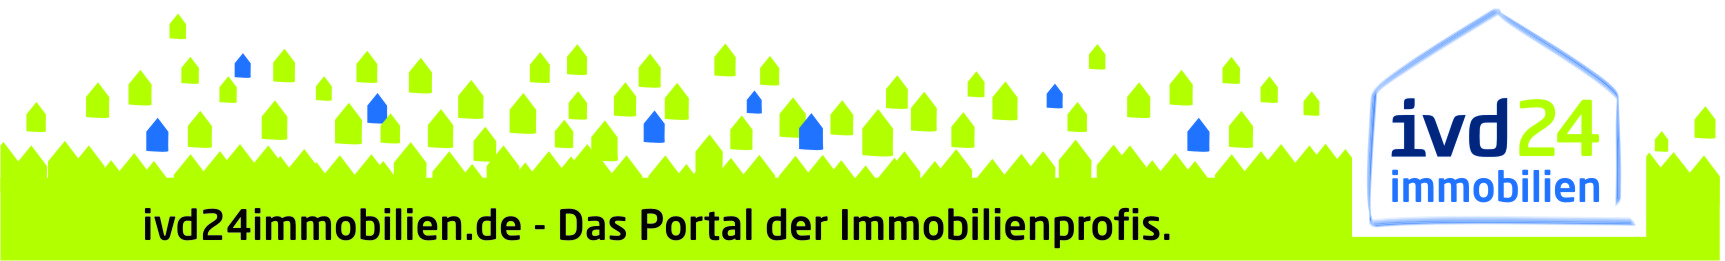 Link zur Website: ivd24immobilien.de